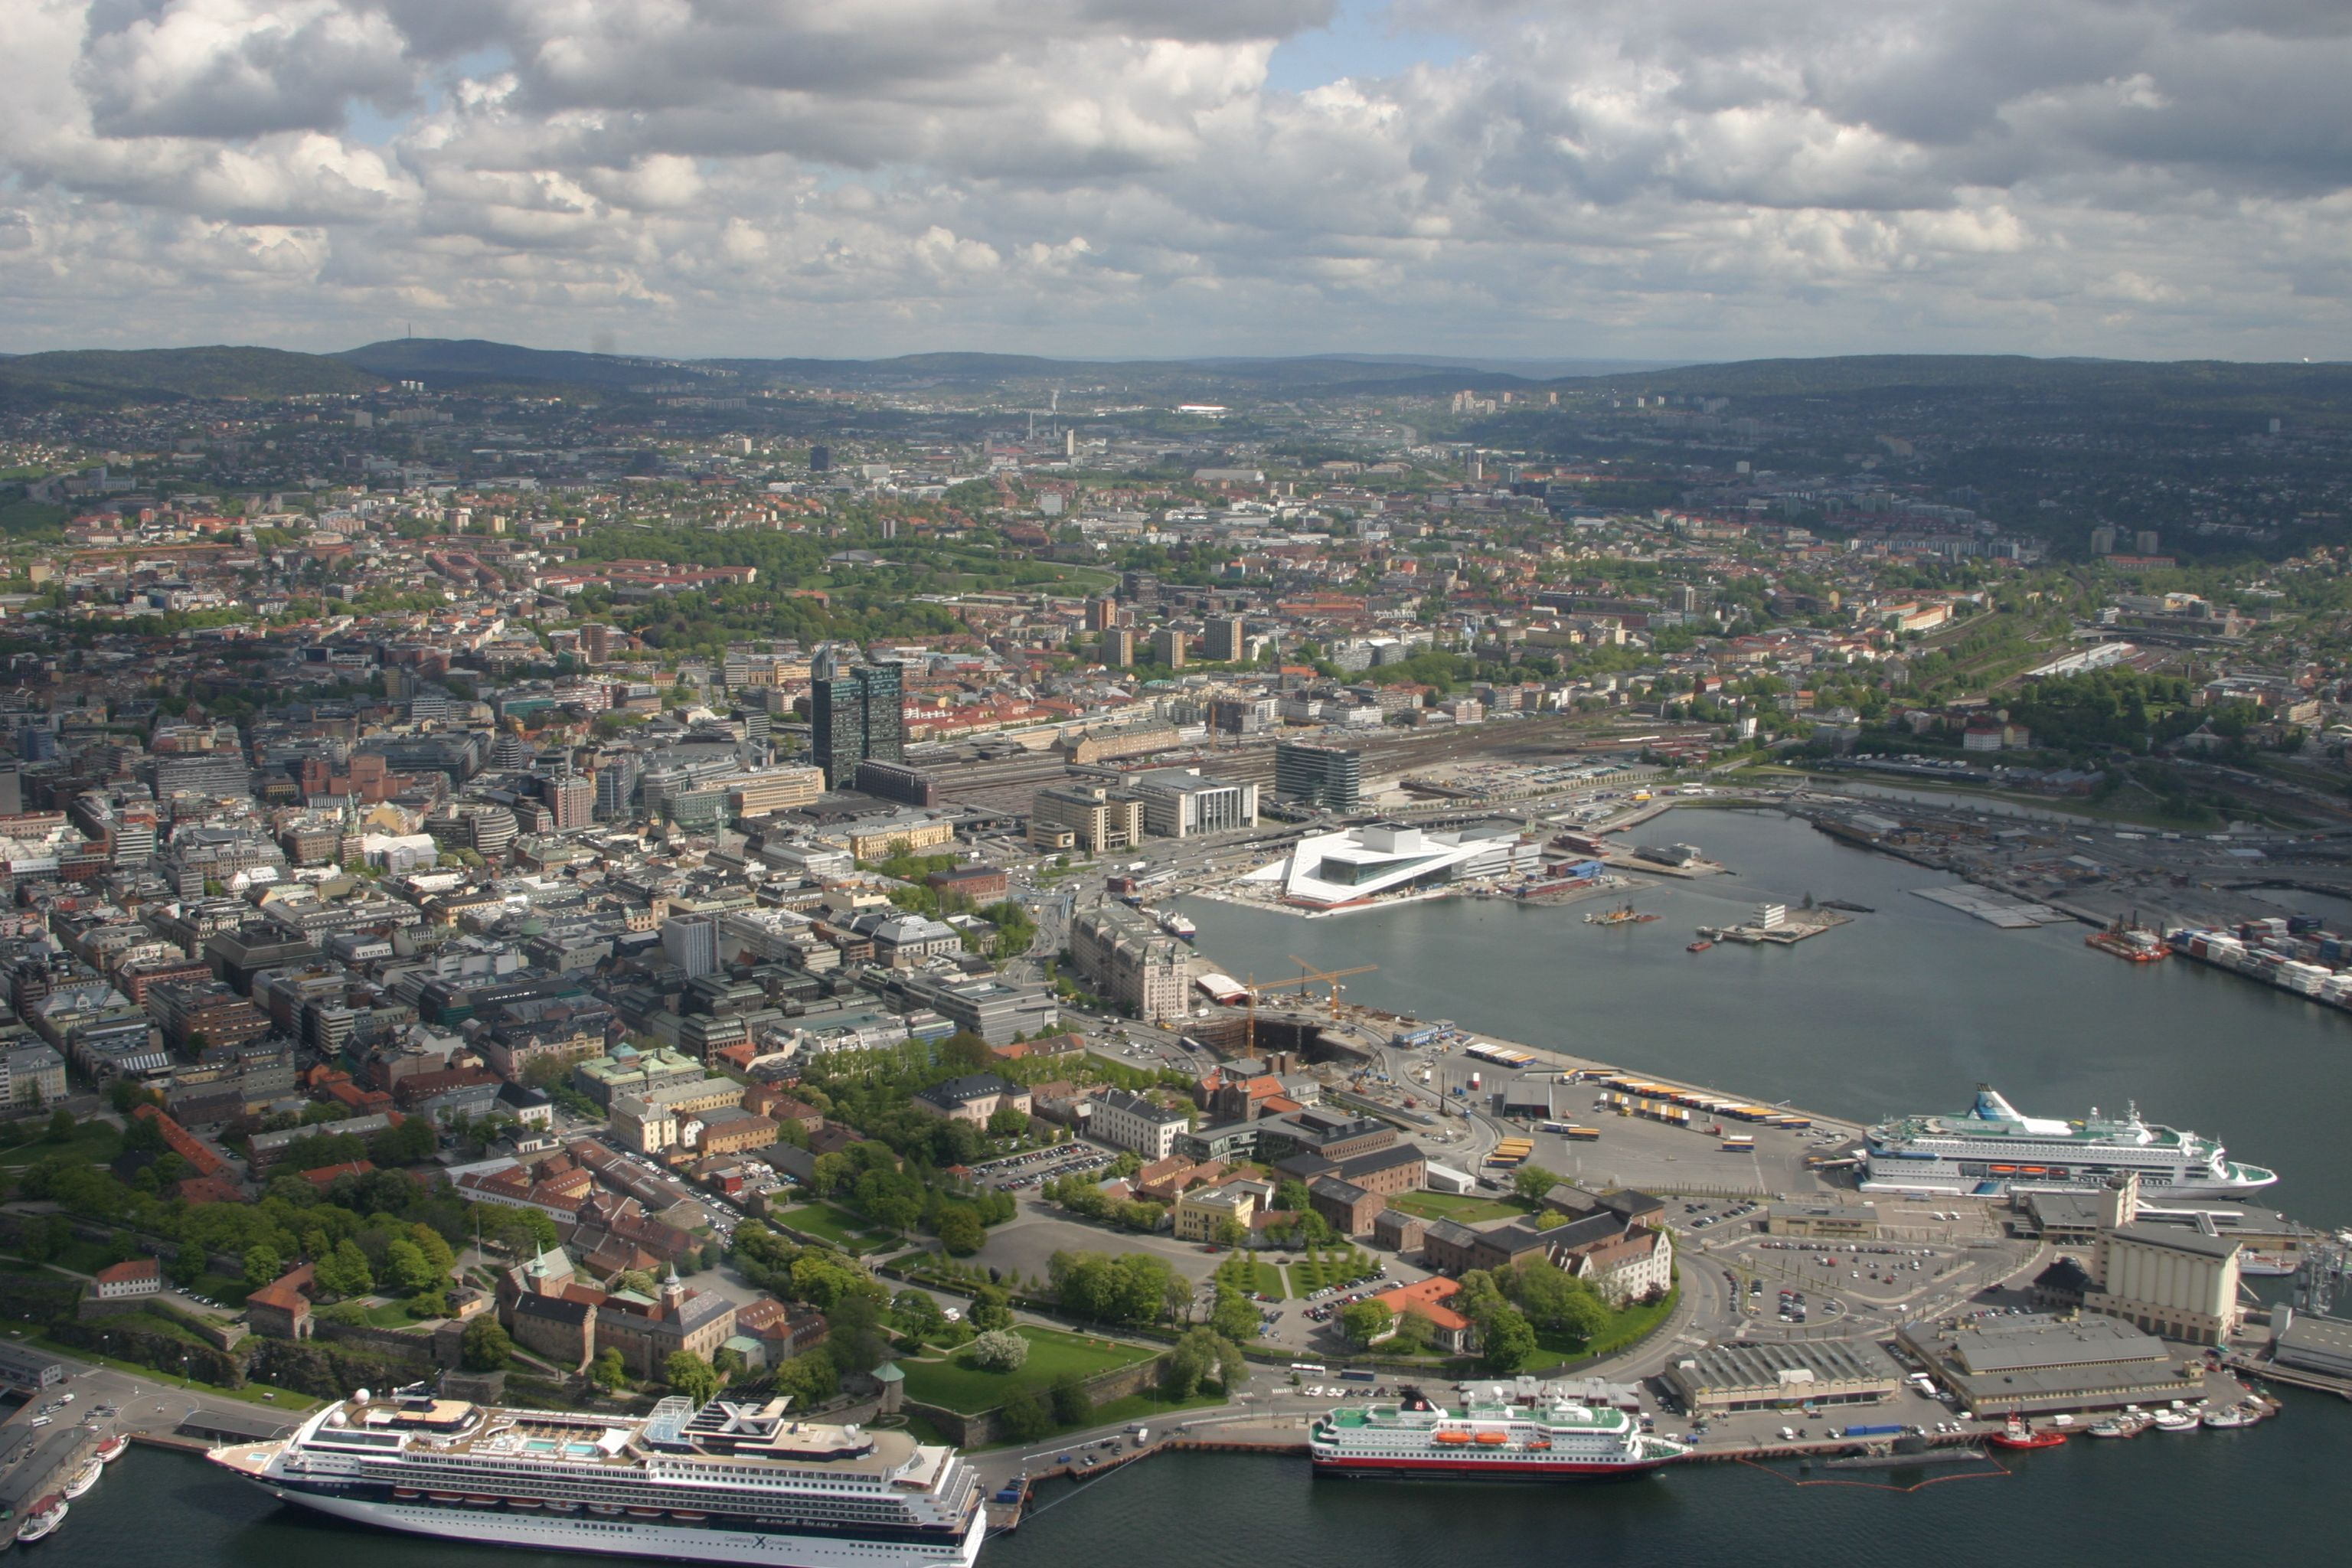 La ville d'Oslo commande 3 000 mobiles sous Windows Phone